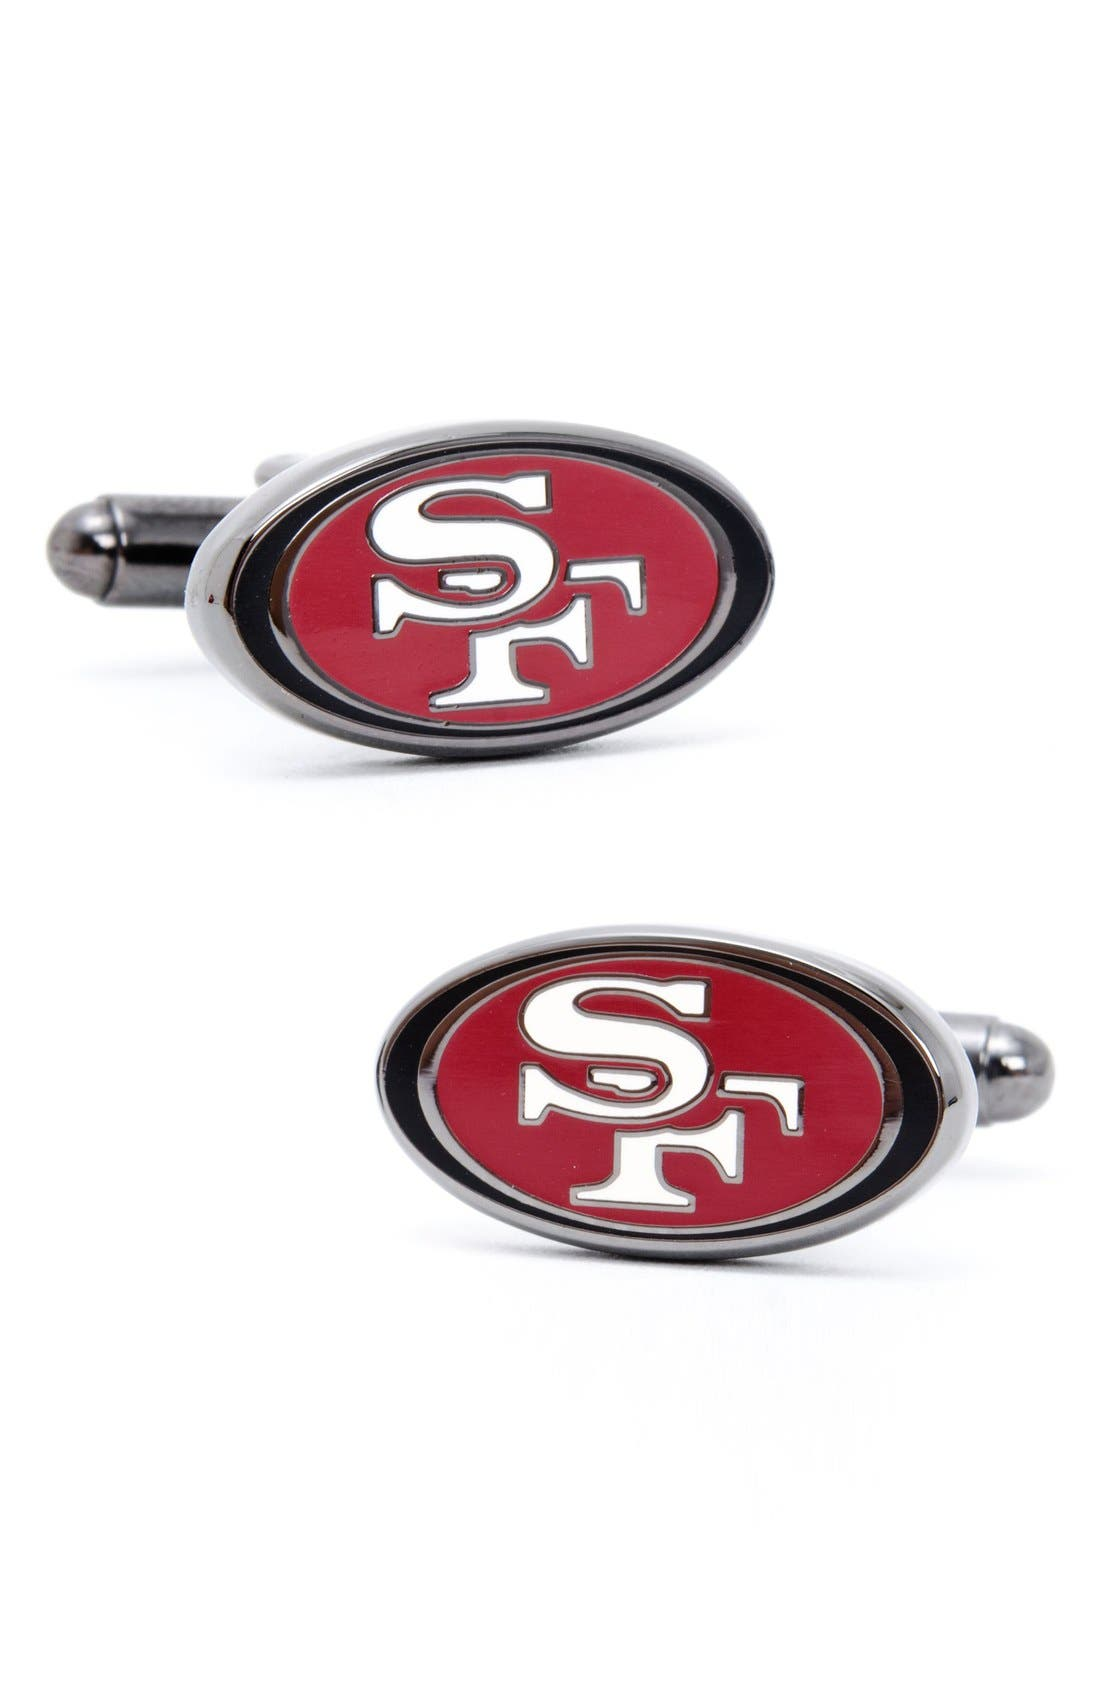 'San Francisco 49ers' Cuff Links,                             Main thumbnail 1, color,                             RED